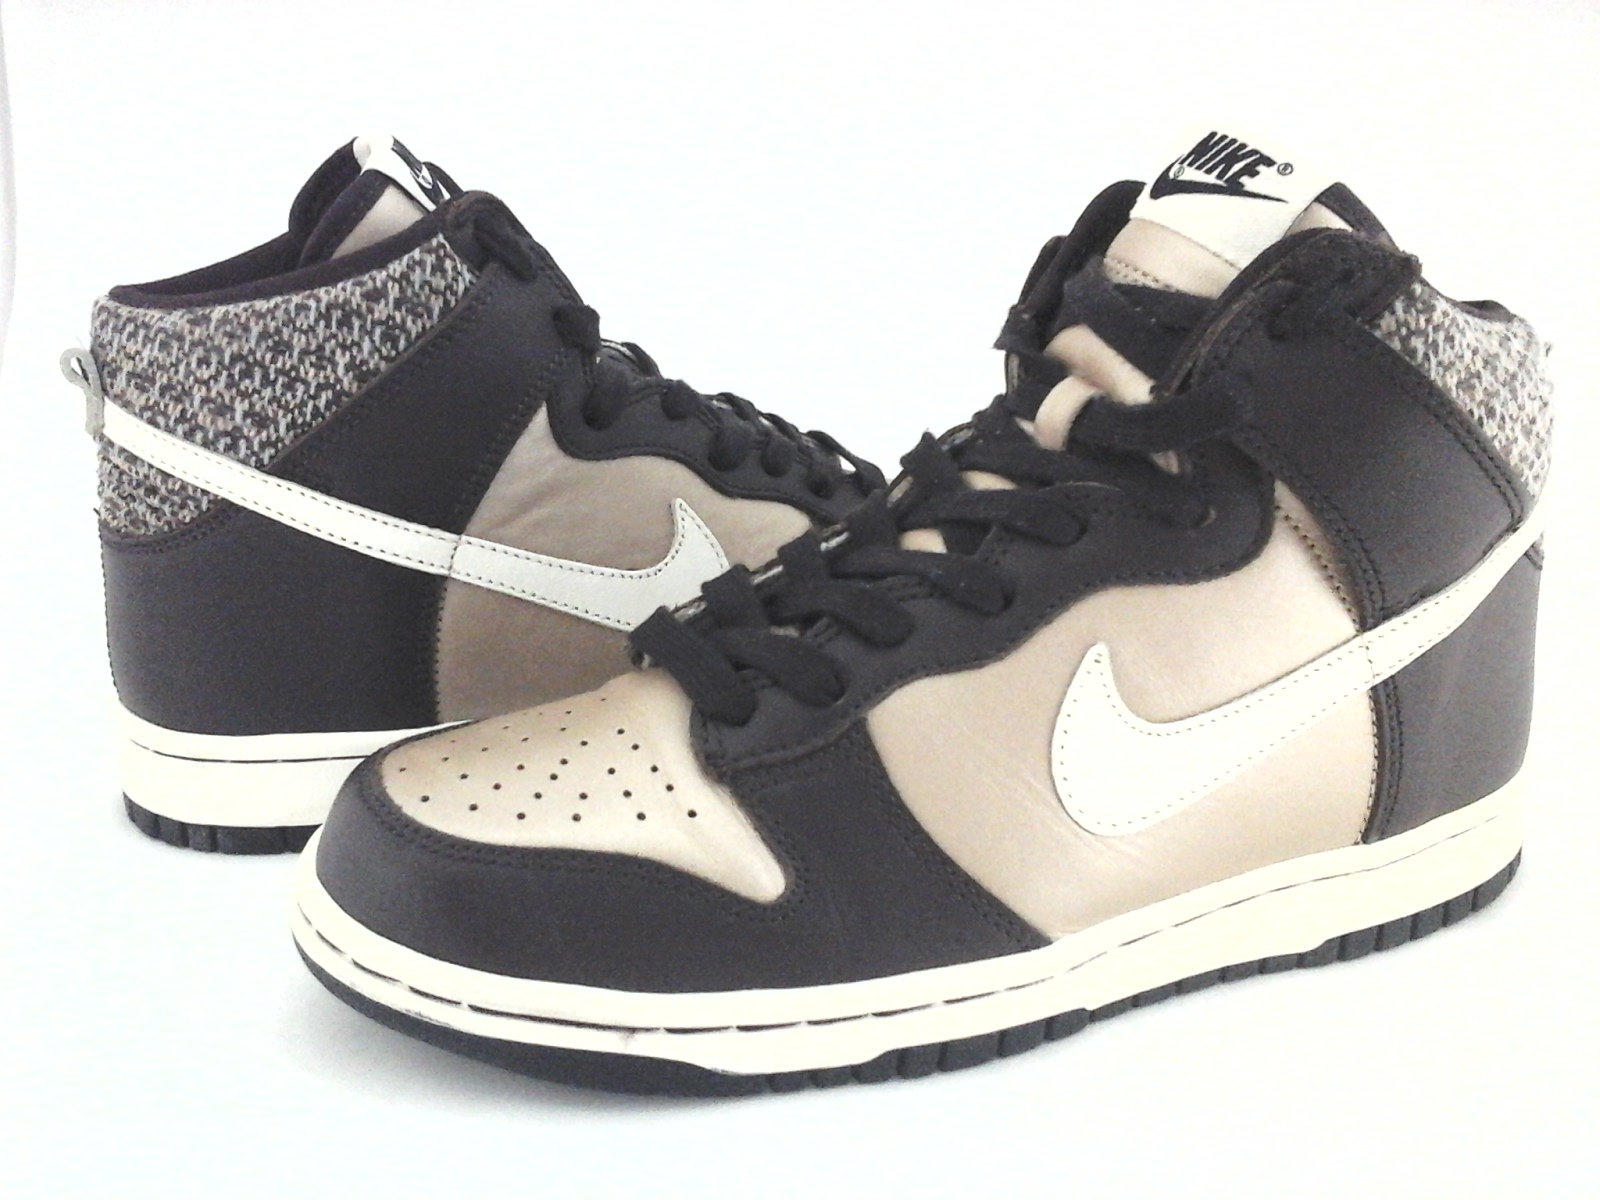 new style d4d5e 90367 Details about NIKE Dunk Sneakers High Top Brown Champagne 309432-911 Womens  US 7.5   38.5 RARE